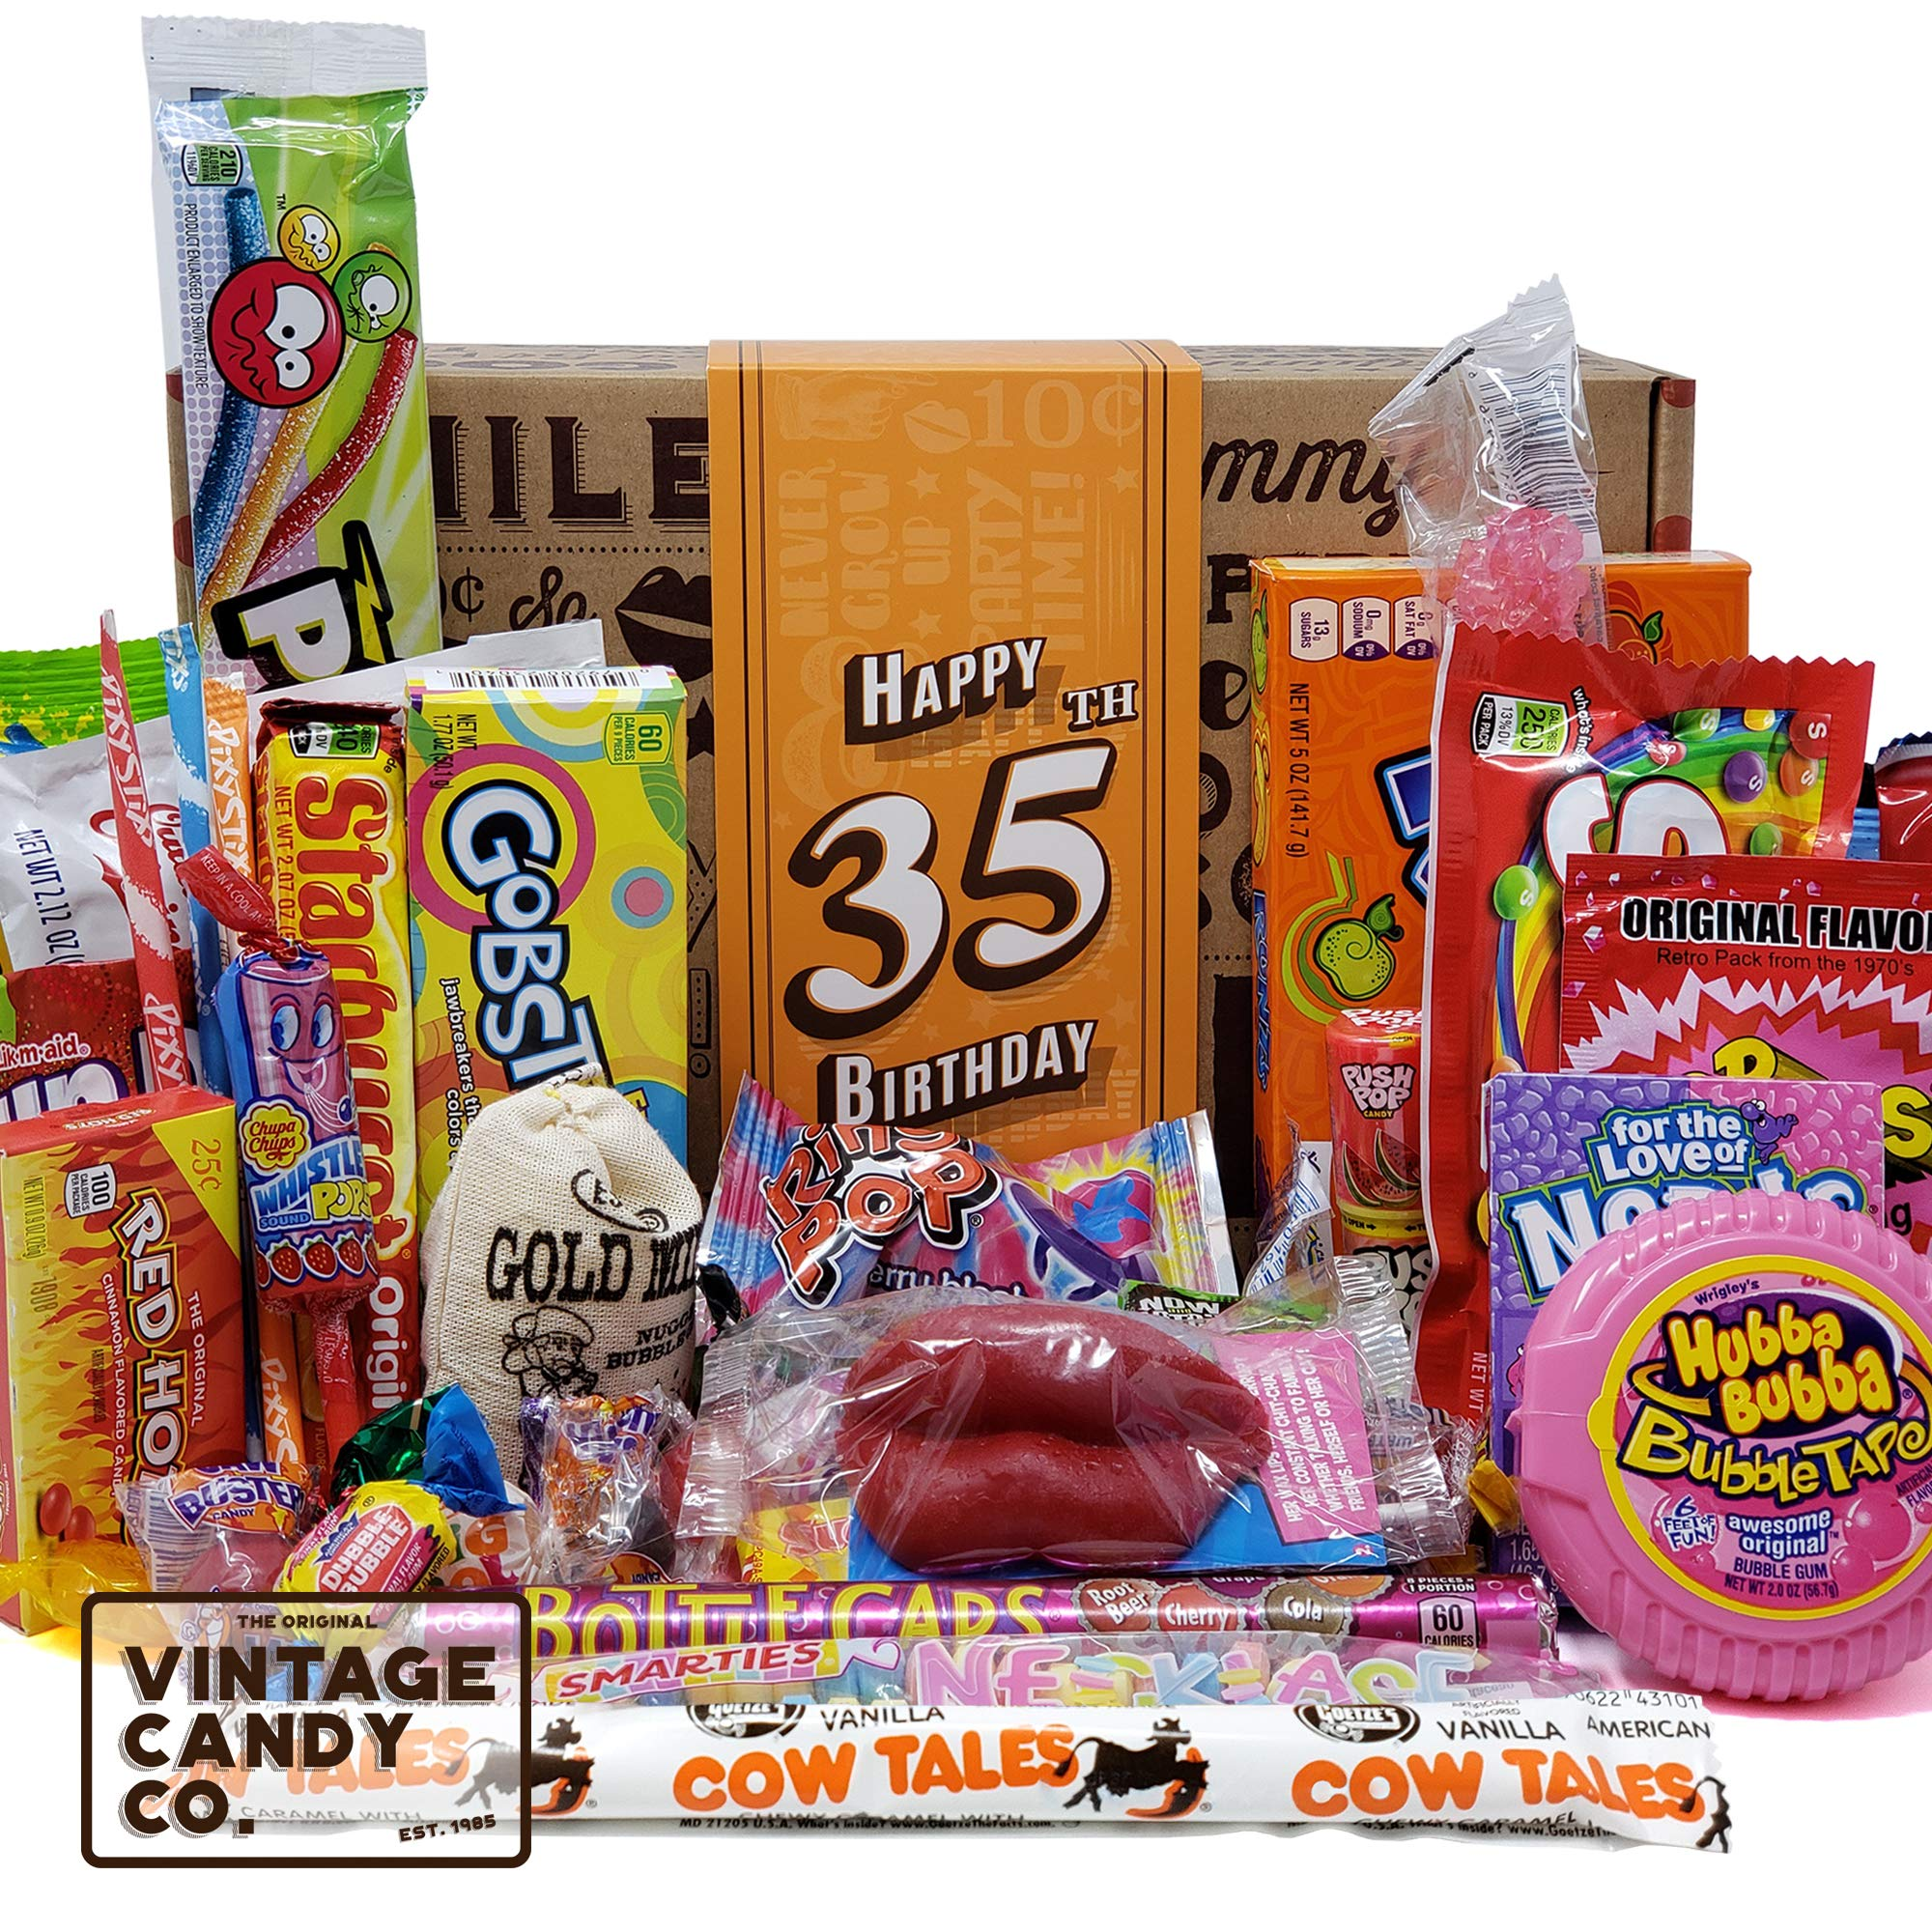 VINTAGE CANDY CO. 35TH BIRTHDAY RETRO CANDY GIFT BOX - 1984 Decade Childhood Nostalgic Candies - Fun Funny Gag Gift Basket - Milestone 35 Birthday PERFECT For THIRTY FIVE Year Old Man | Woman